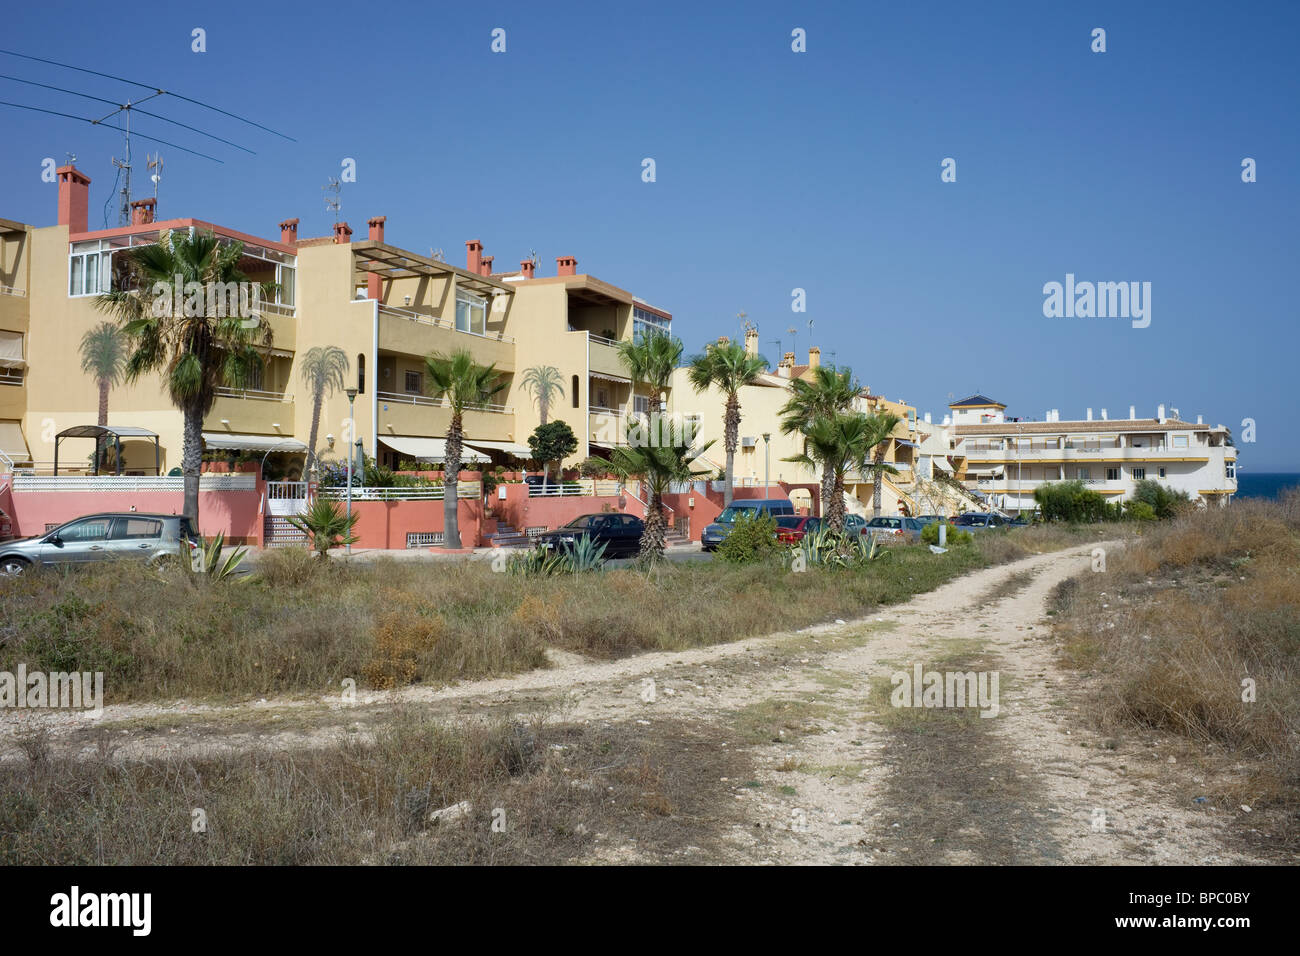 Photograph of an urbanisation in Torrevieja, Spain. - Stock Image